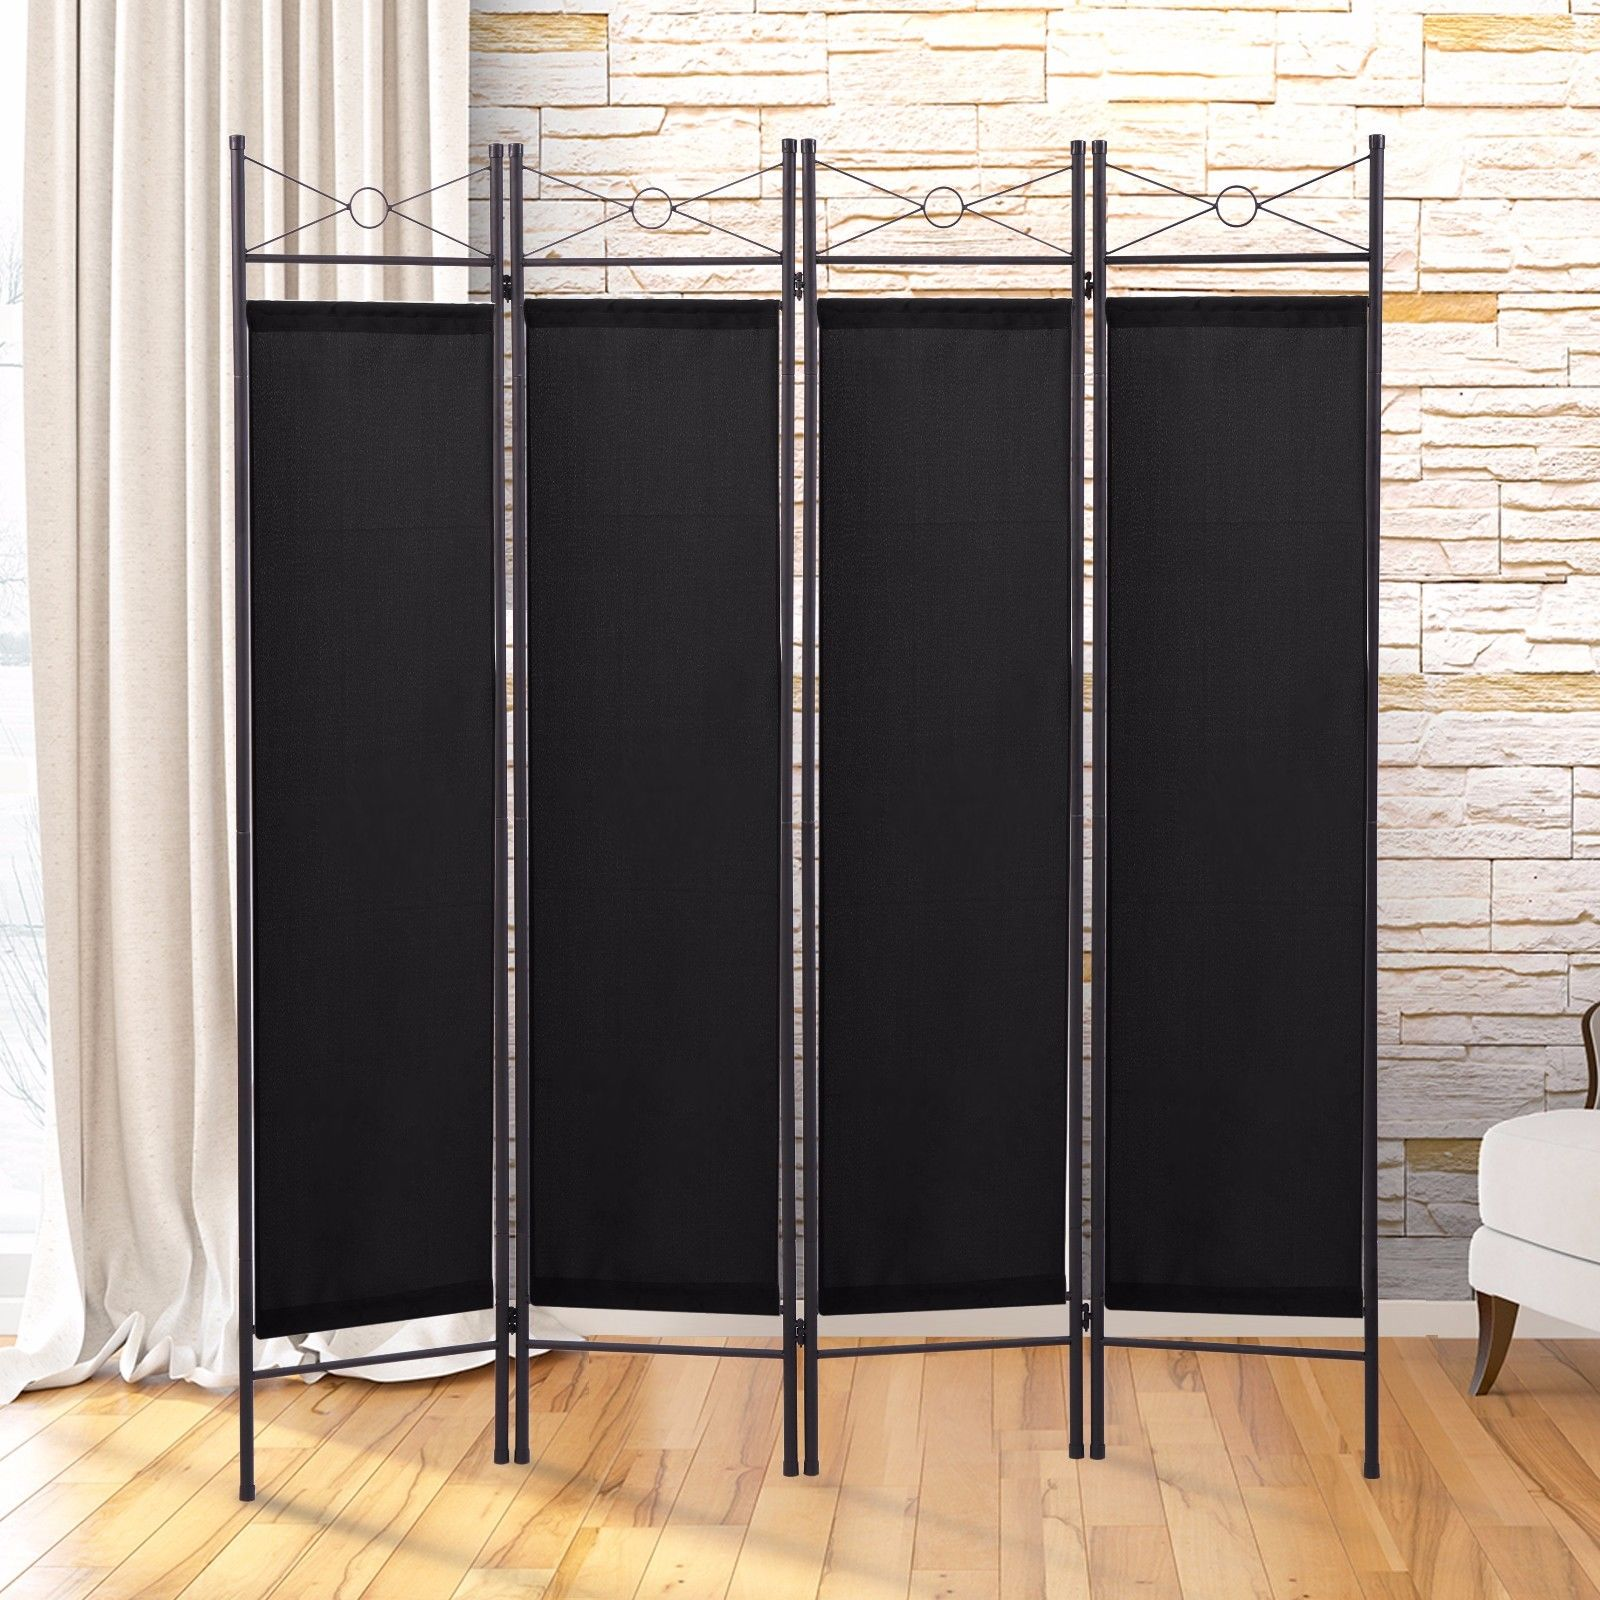 Room Divider Partition Custom Portable Rooms Partitions Design Ideas